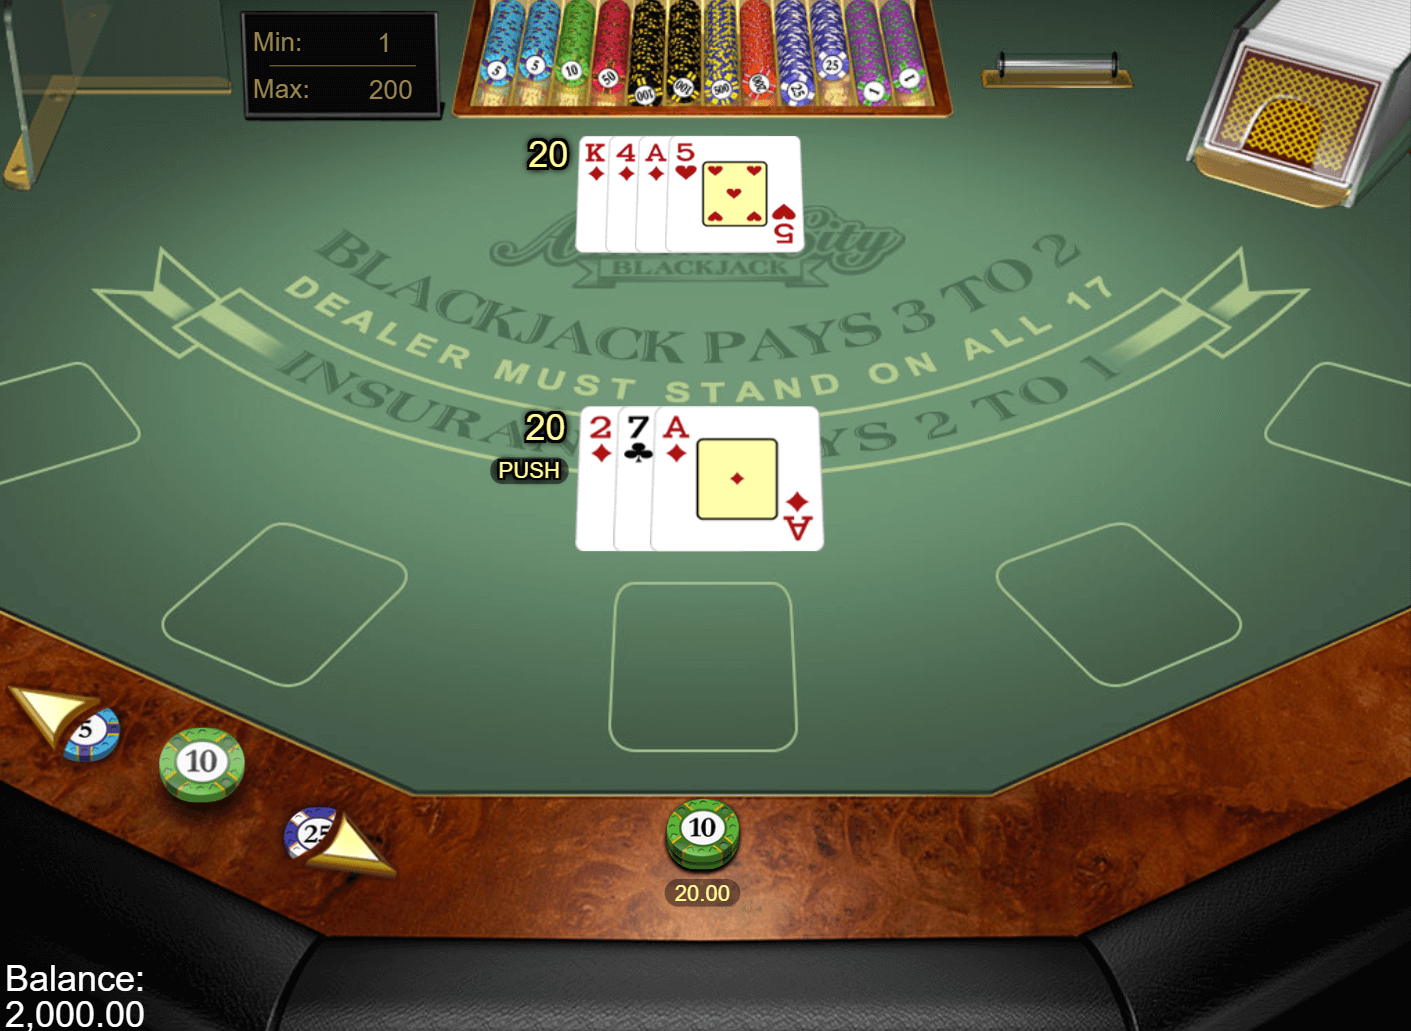 A screenshot of Atlantic City Blackjack Gold showing a push between the dealer and the player